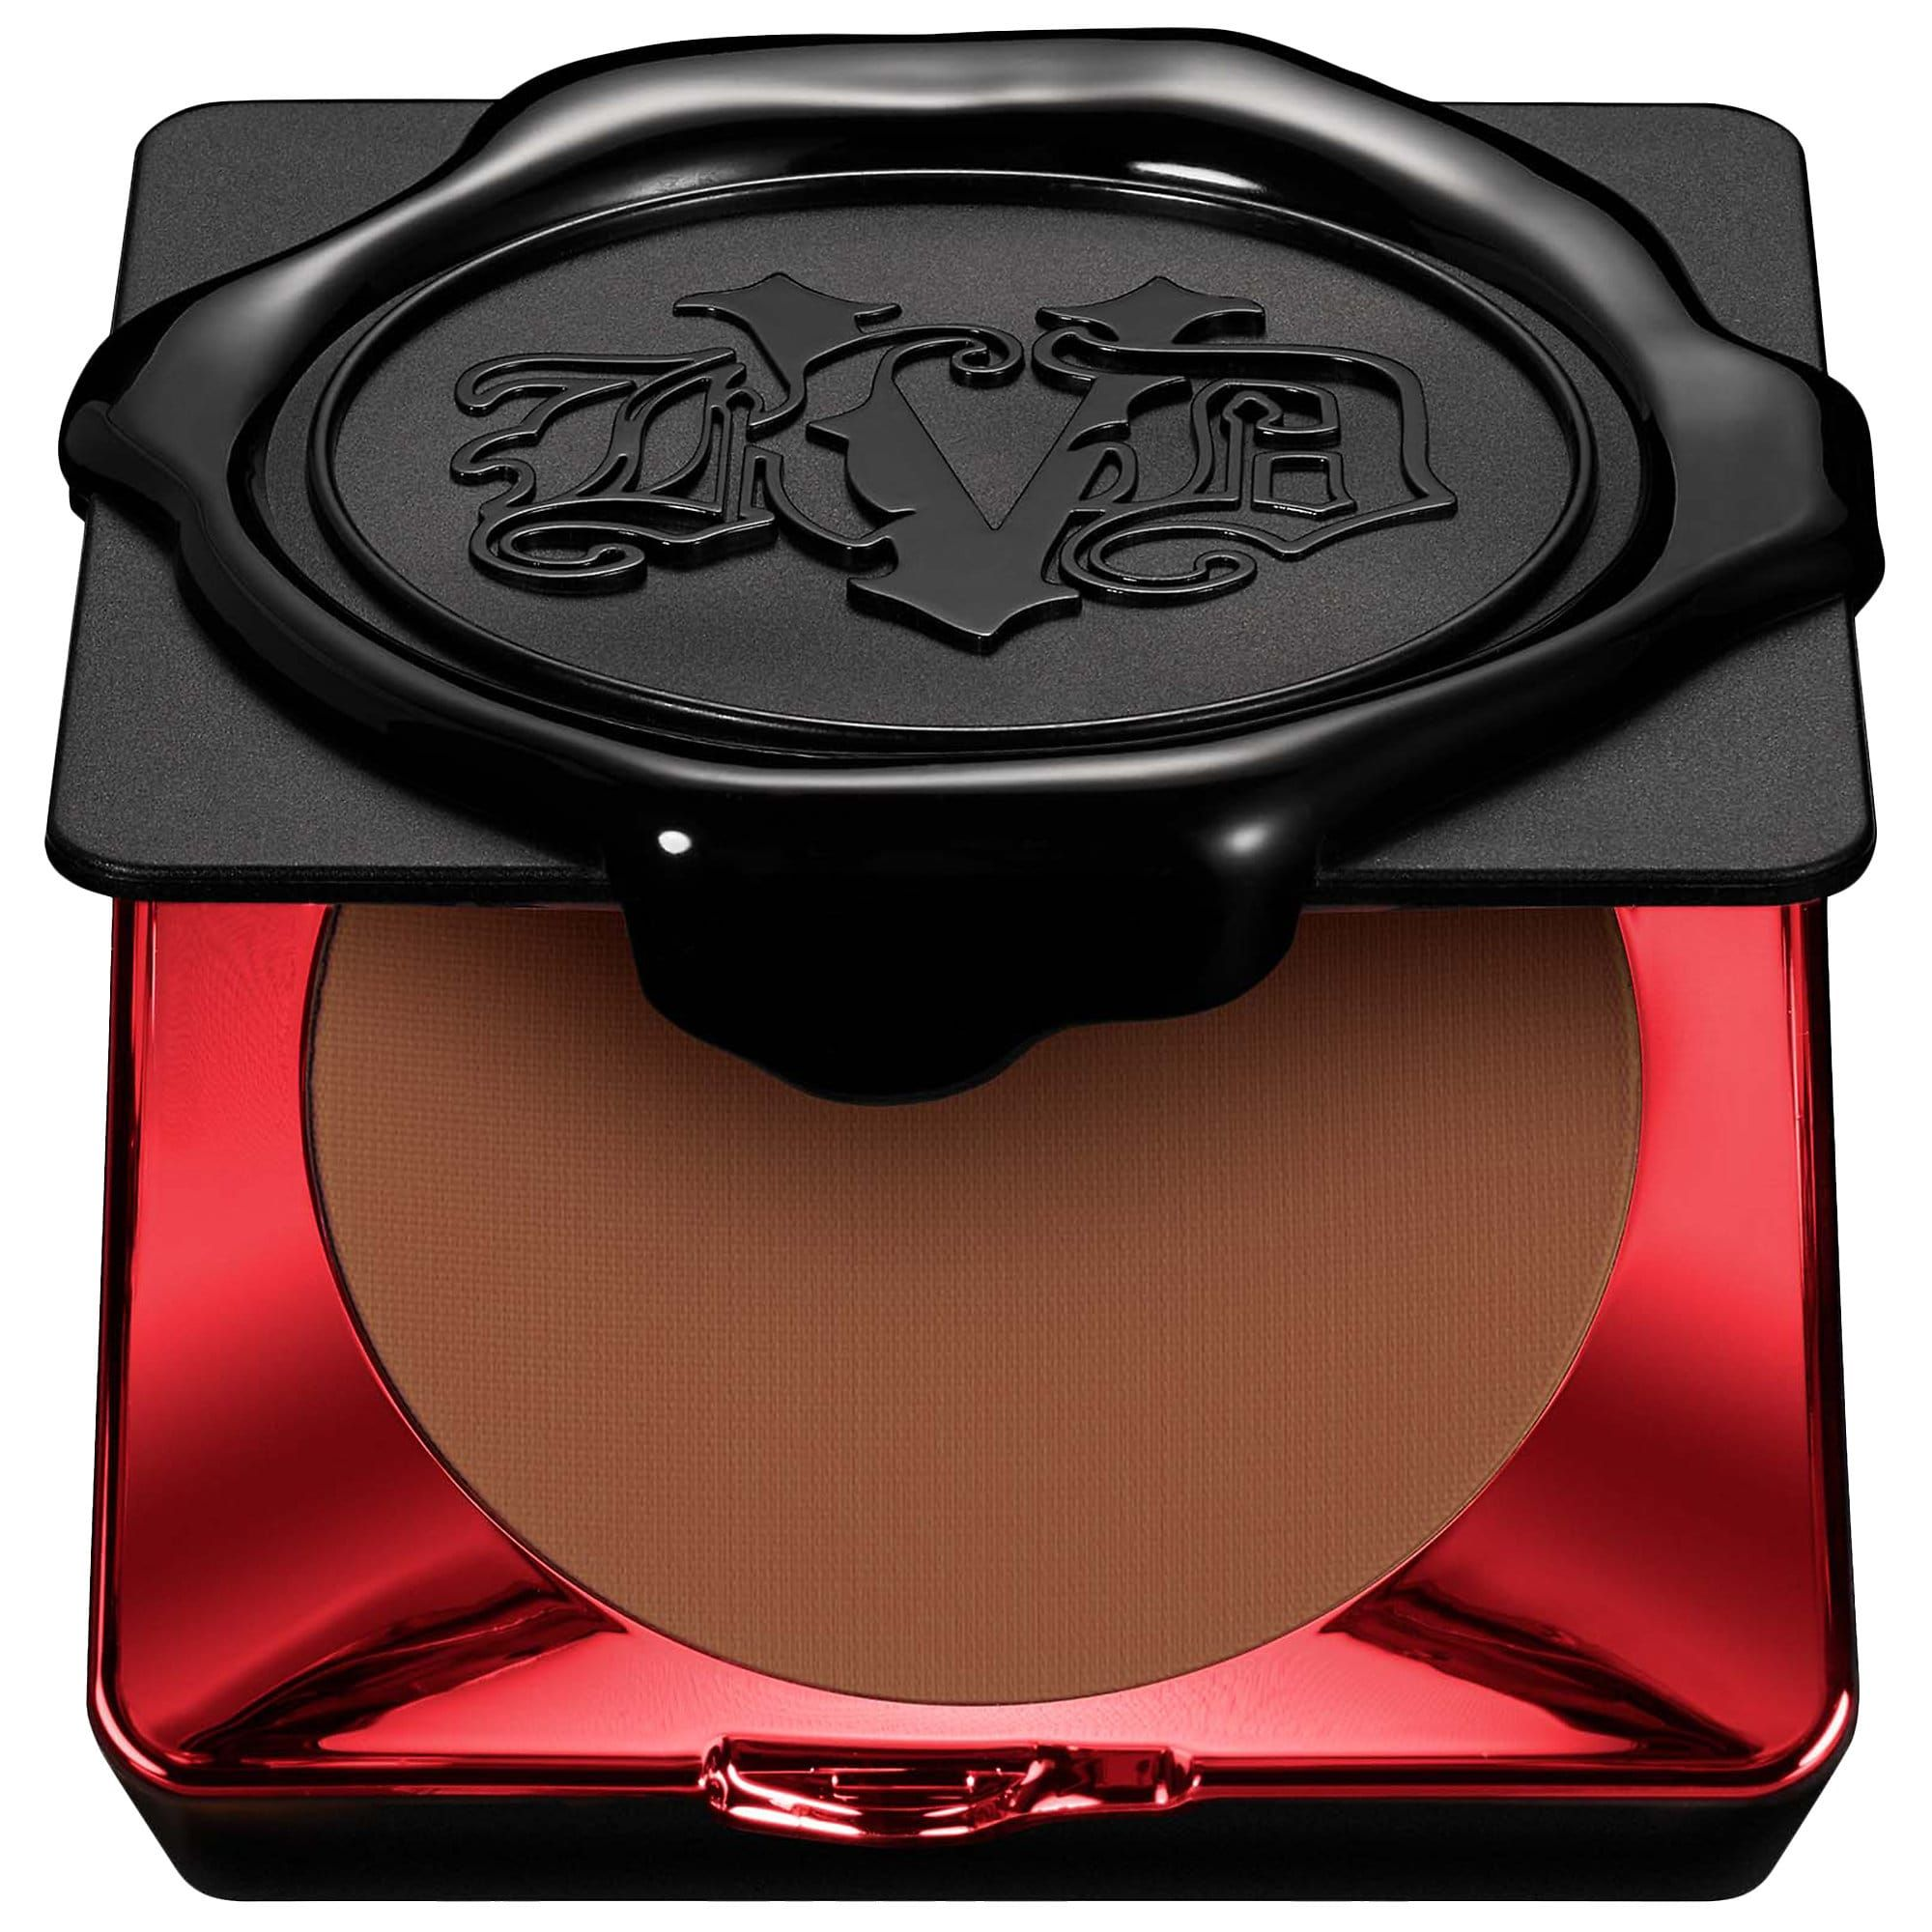 For Long, Busy Days Lock-It Powder Foundation Kat Von D sephora.com $36.00 SHOP NOW Like all of Kat Von D's Lock-It products (shout out to the setting spray), this sweat-proof foundation won't budge one bit all day.